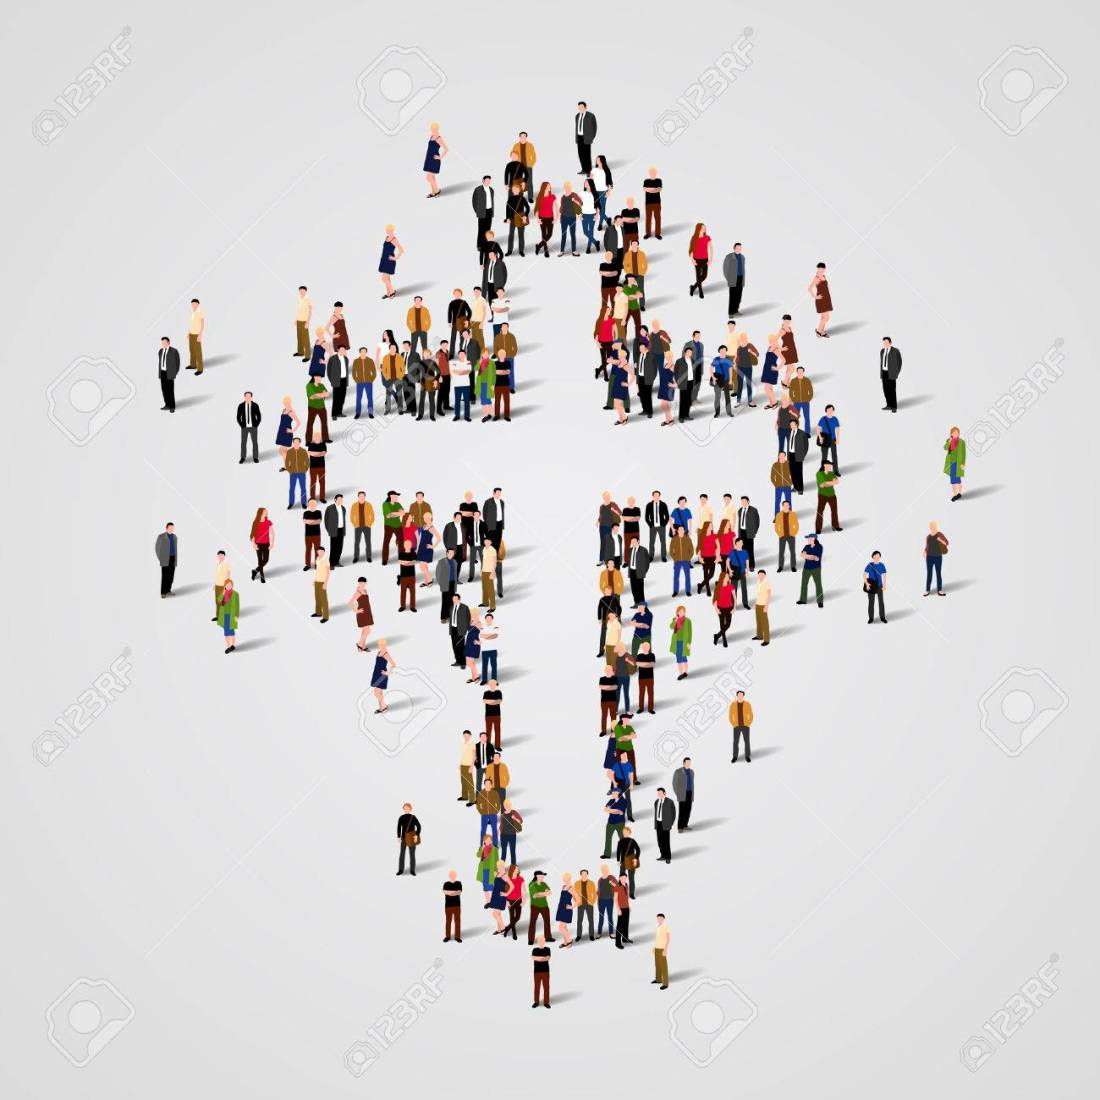 57806818-large-group-of-people-in-the-shape-of-cross-vector-illustration